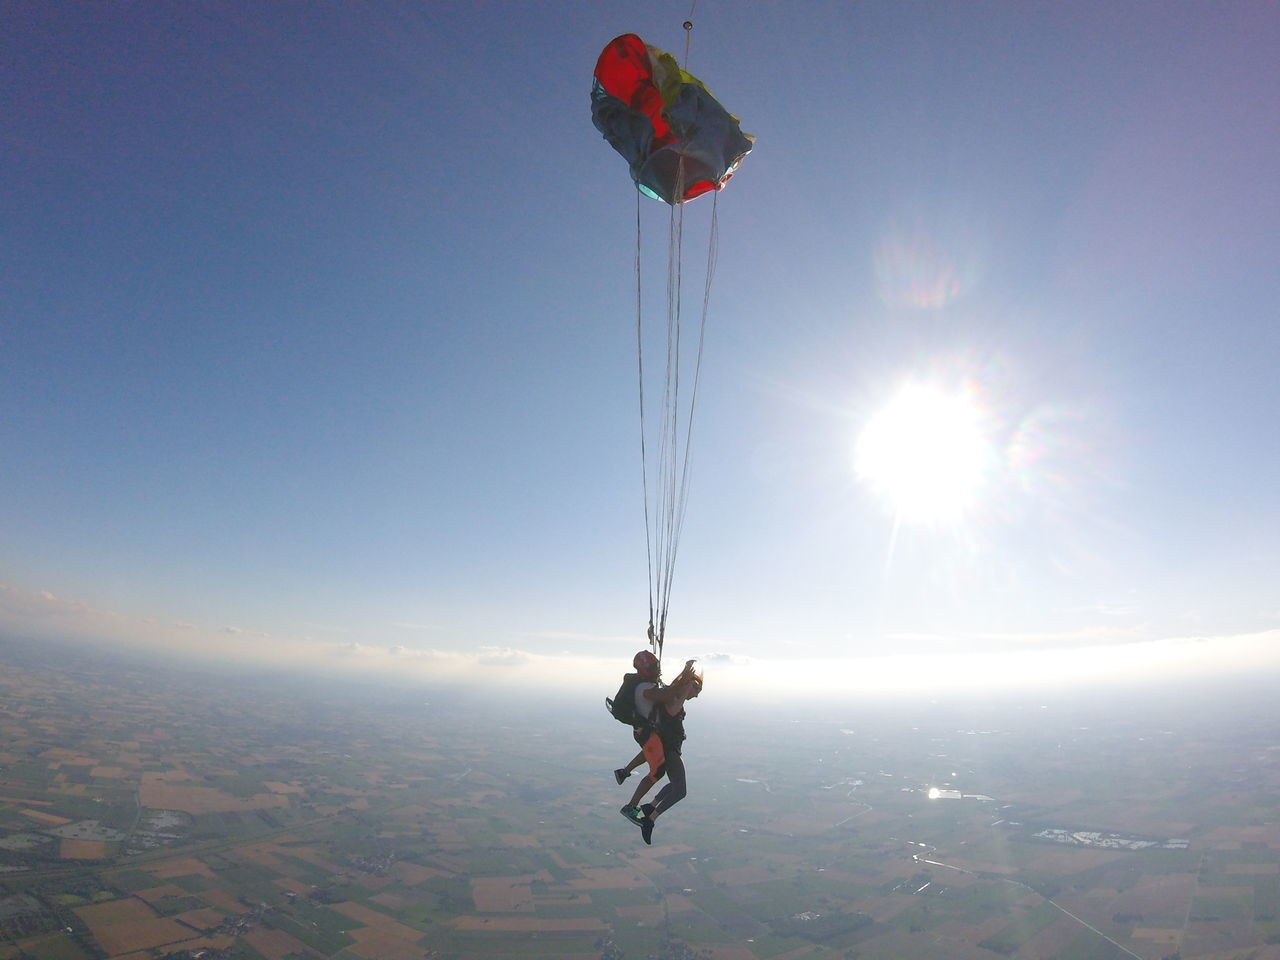 PERSON PARAGLIDING AT SUNSET